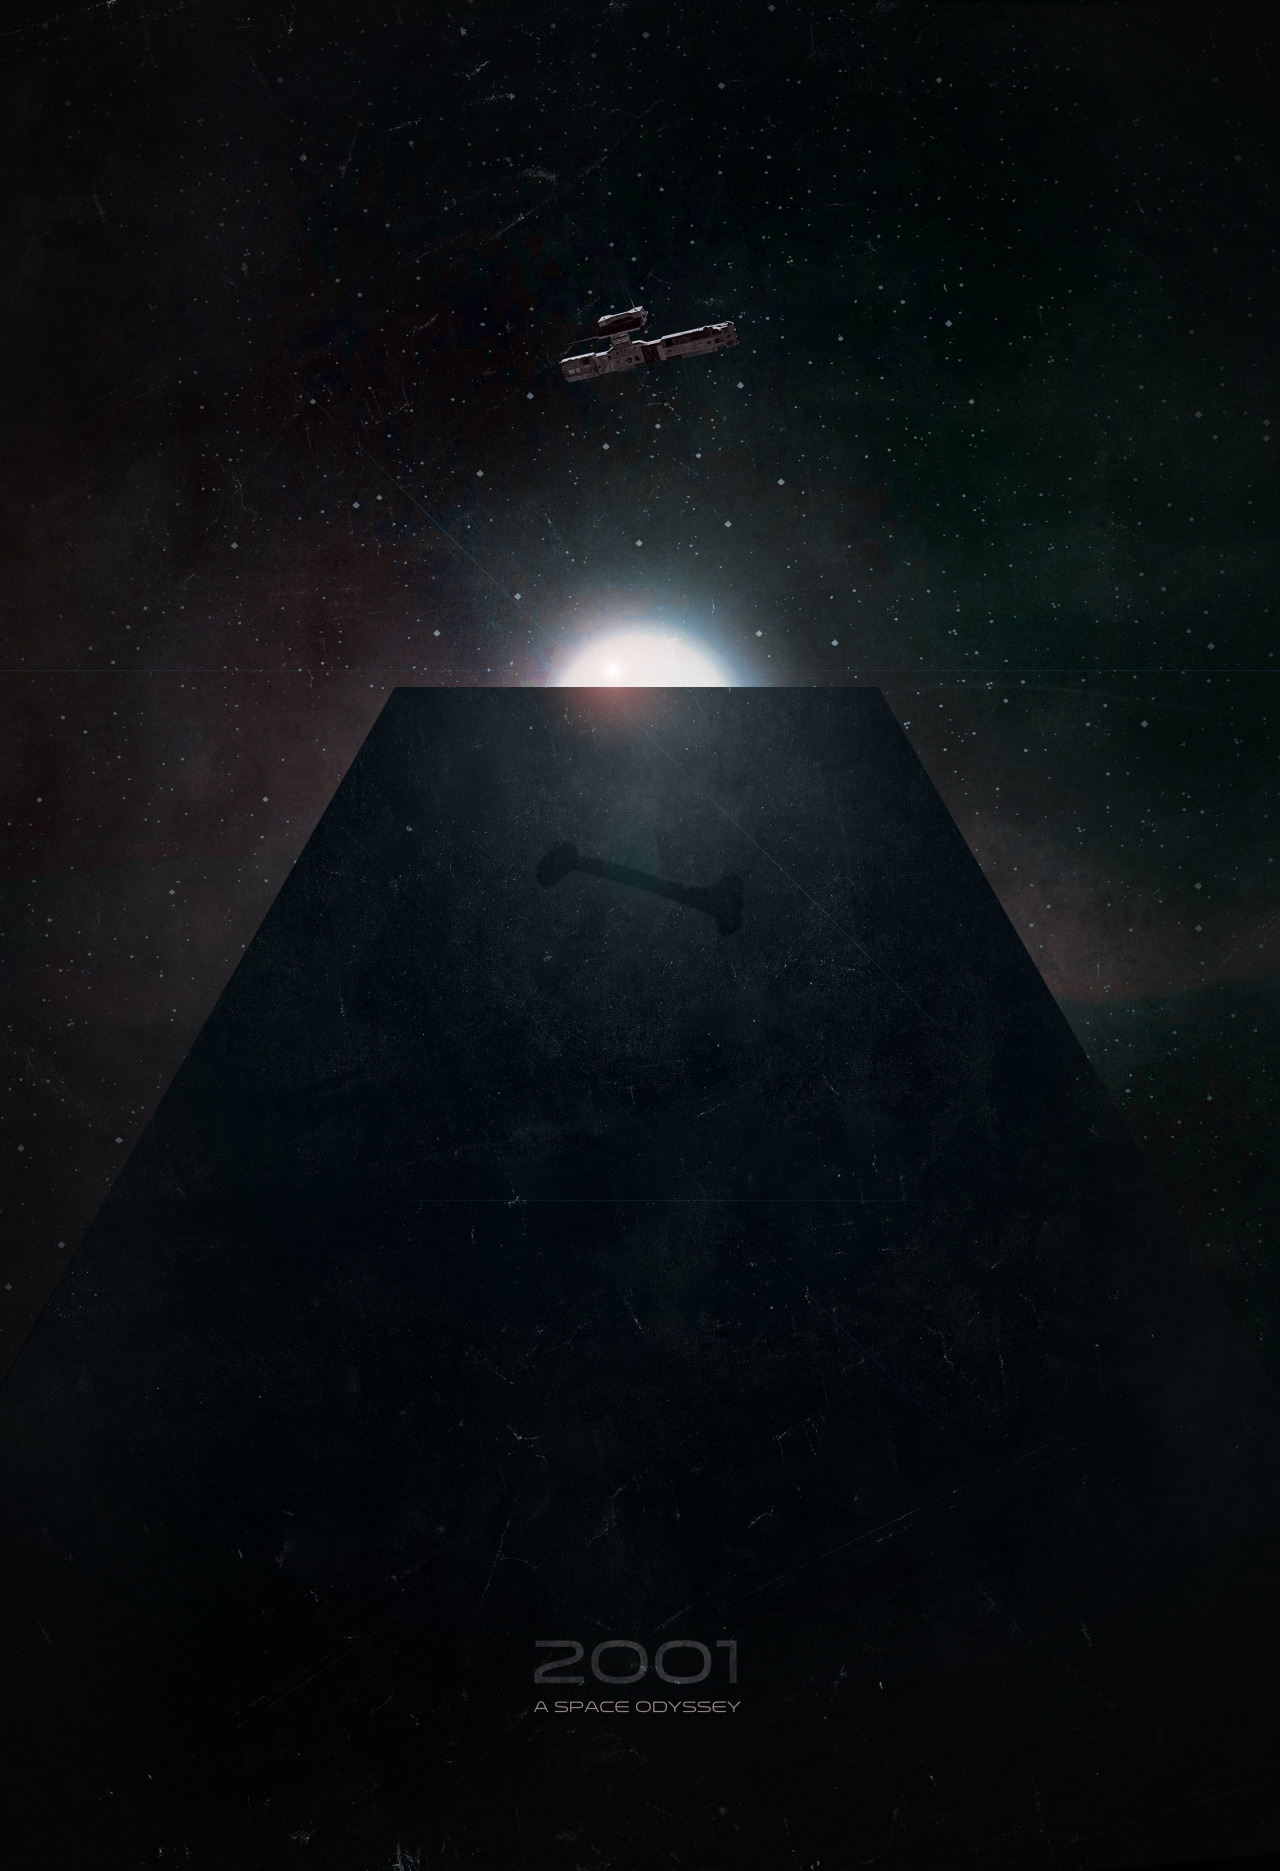 dan-hill:  fuckyeahmovieposters:  2001: A Space Odyssey by Jason Heatherly  Beautiful.  Love it. I want this on my wall now.